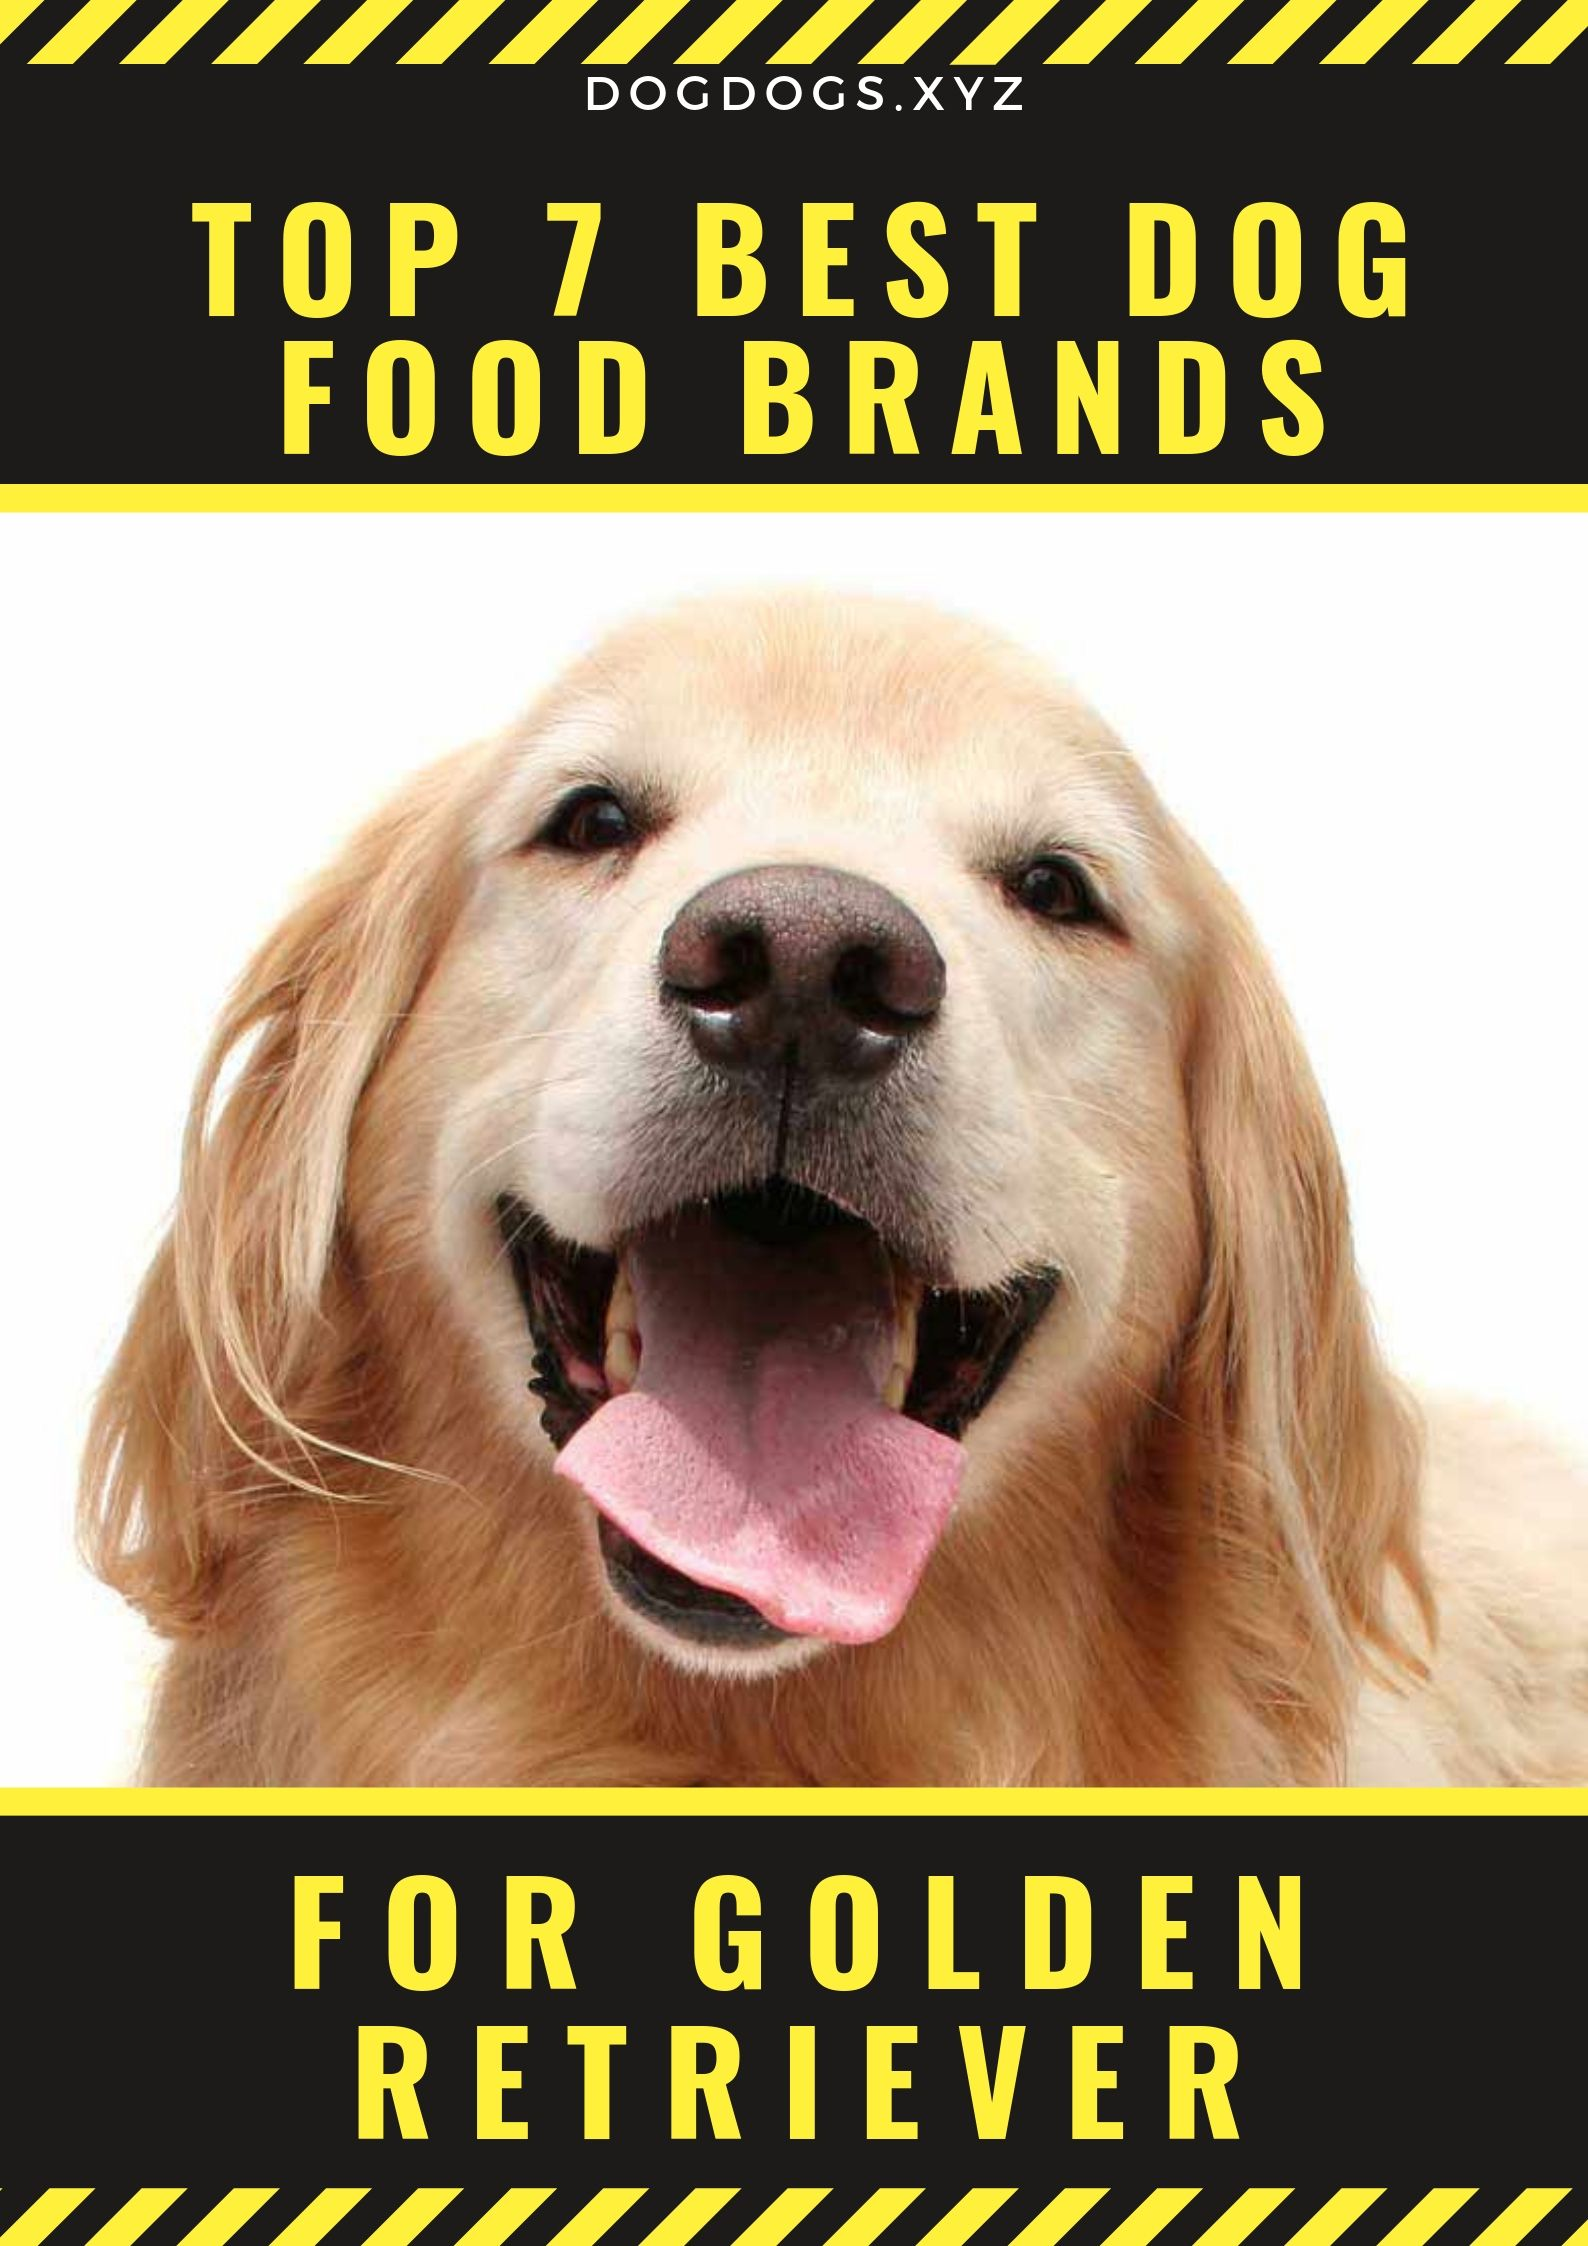 The Ingredients And Nutrition Facts Utilized By Those Best Dog